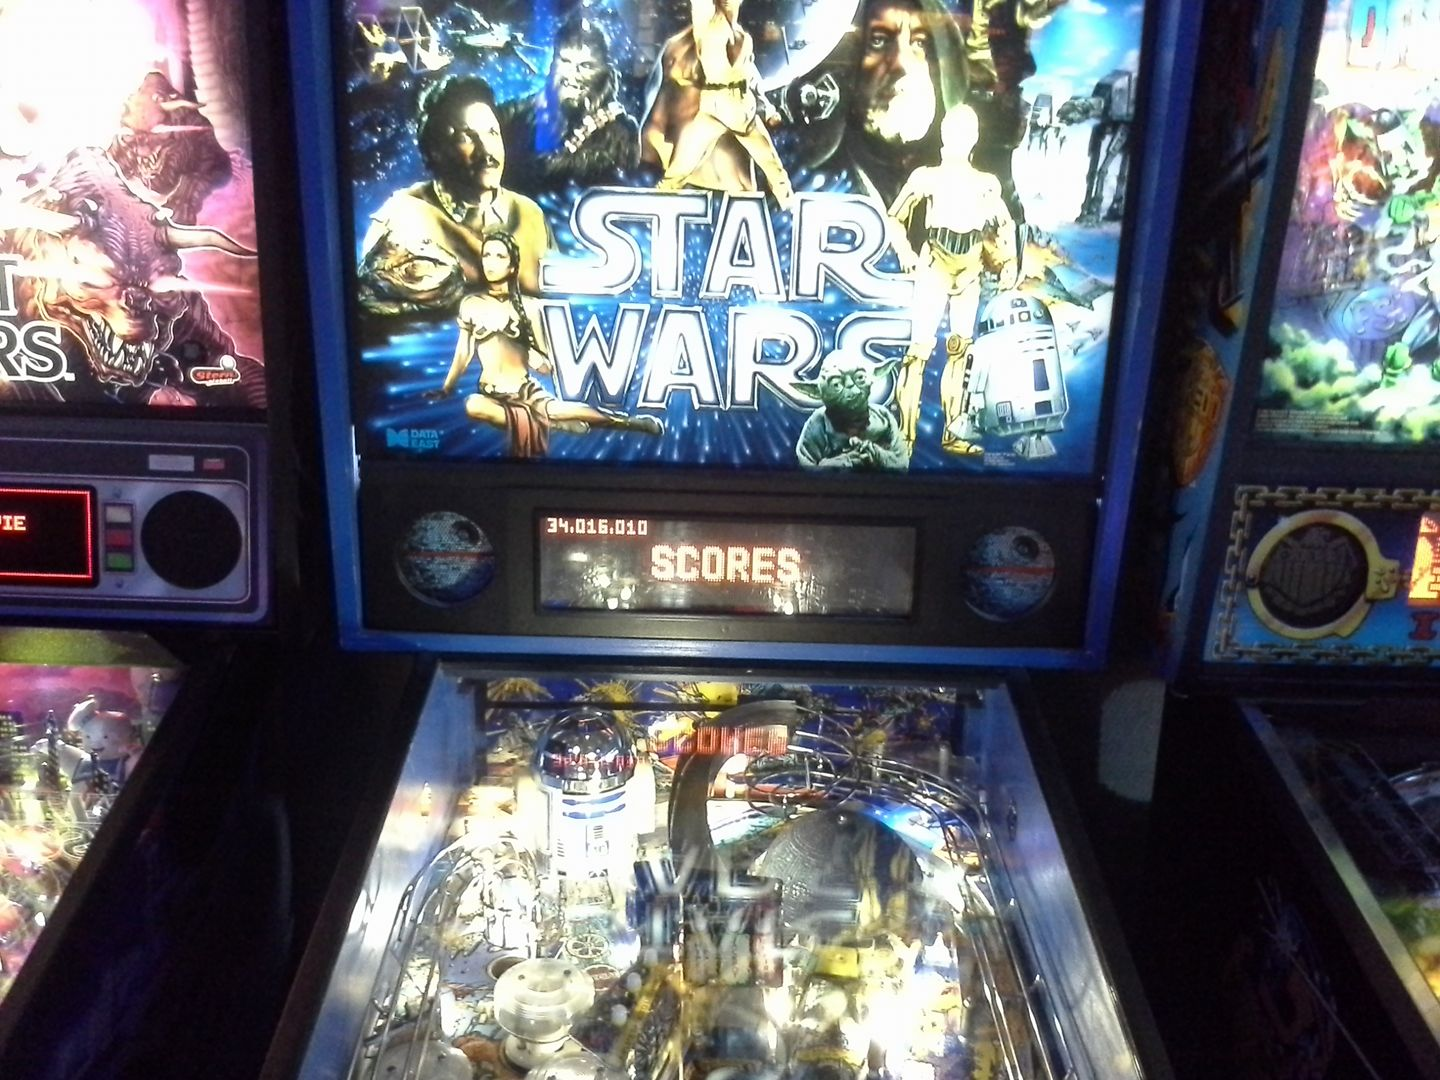 Star Wars (1992 pinball) 36,016,010 points